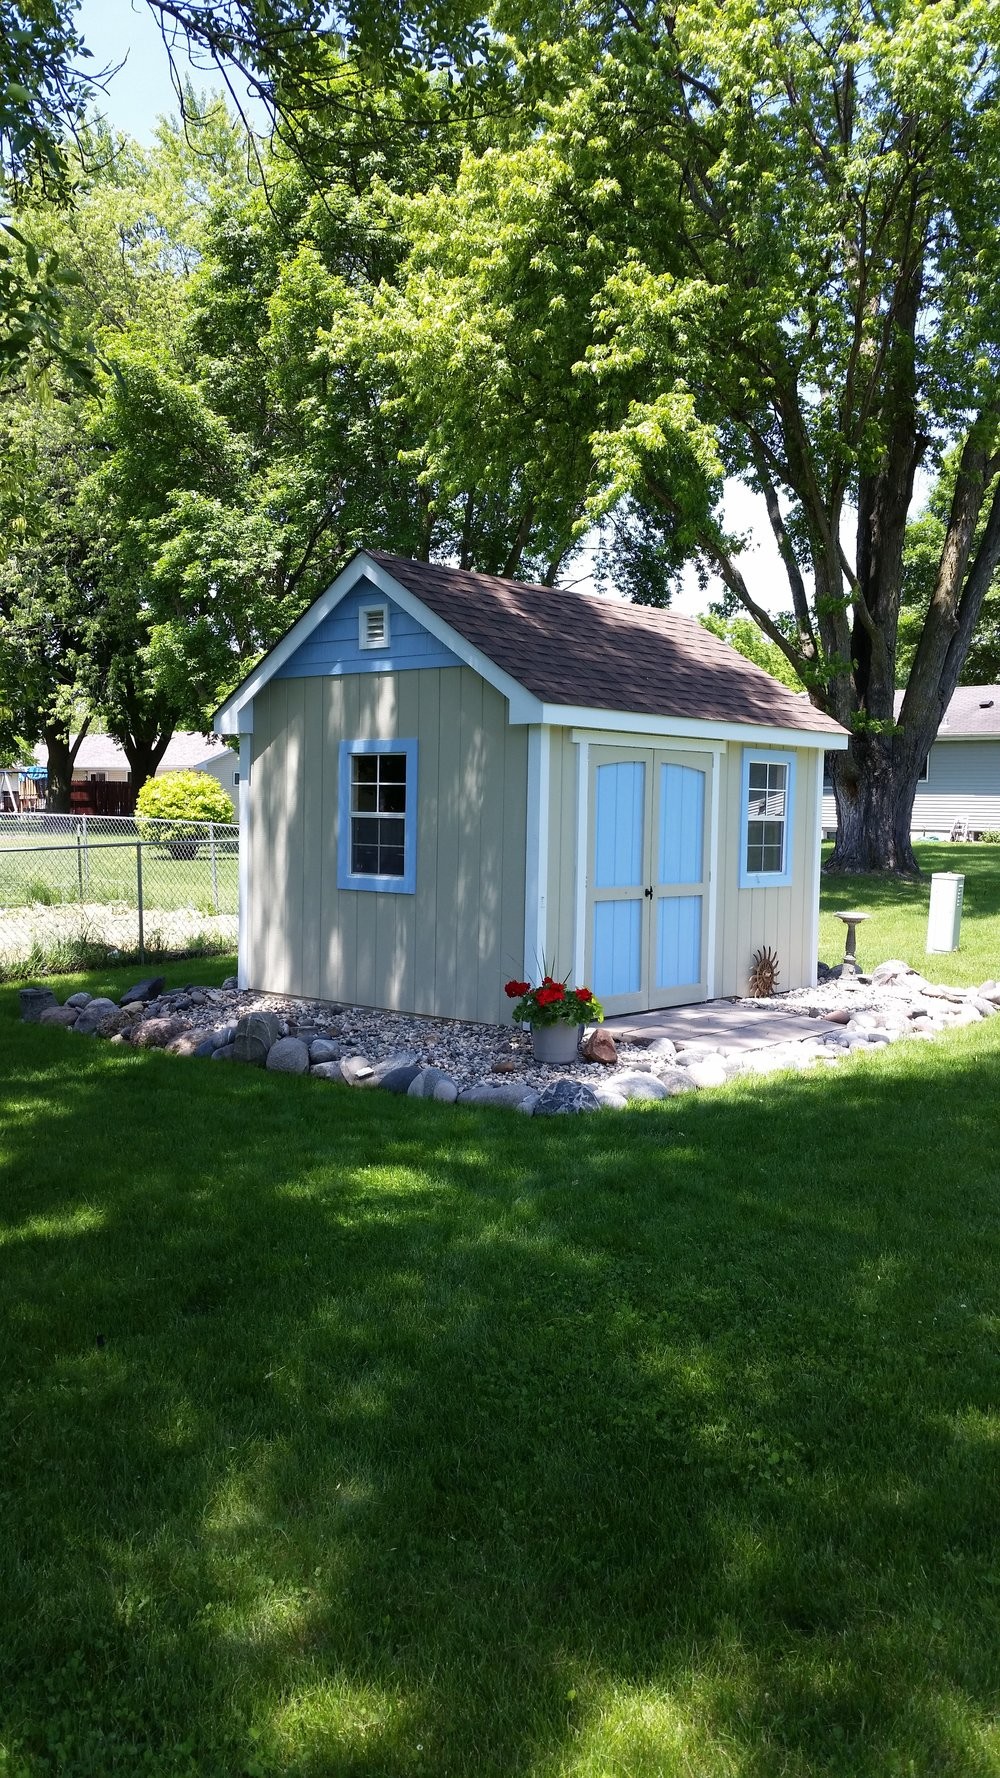 10x12 Gable Deluxe Painted Landscaped Blue 2.JPG